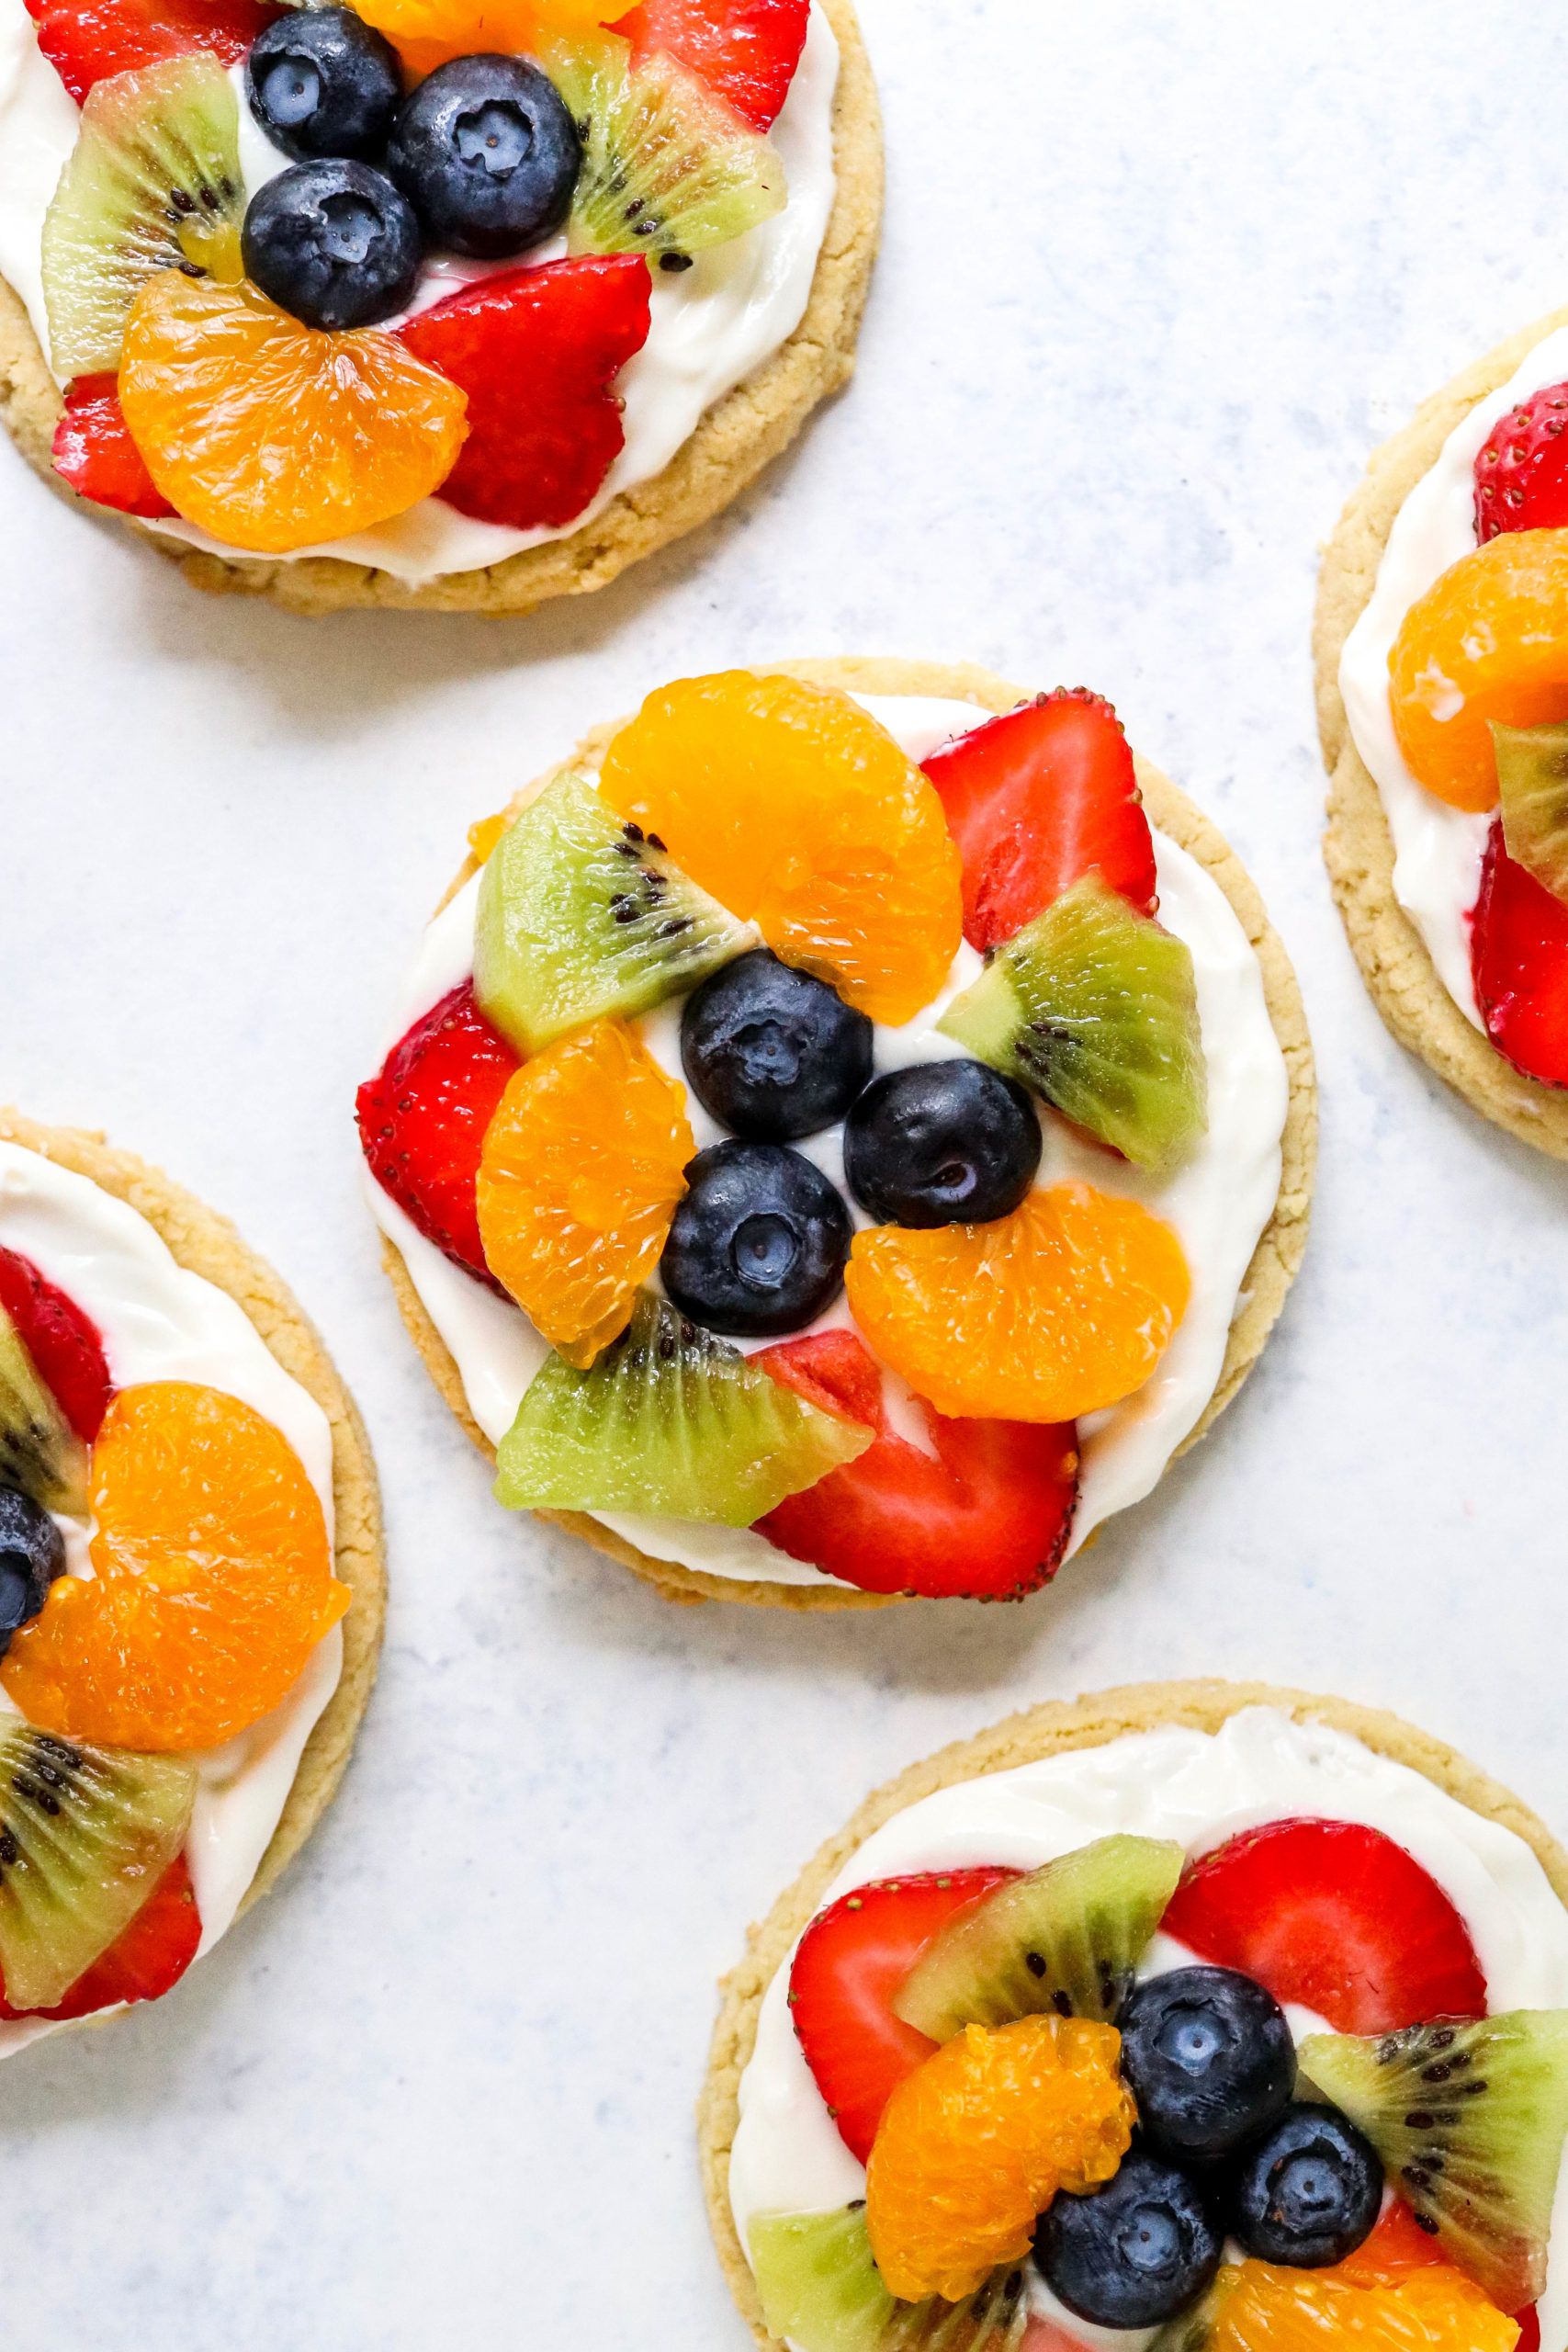 Fruit pizza cookie in the centre of a white surface with more fruit pizza cookies around it.